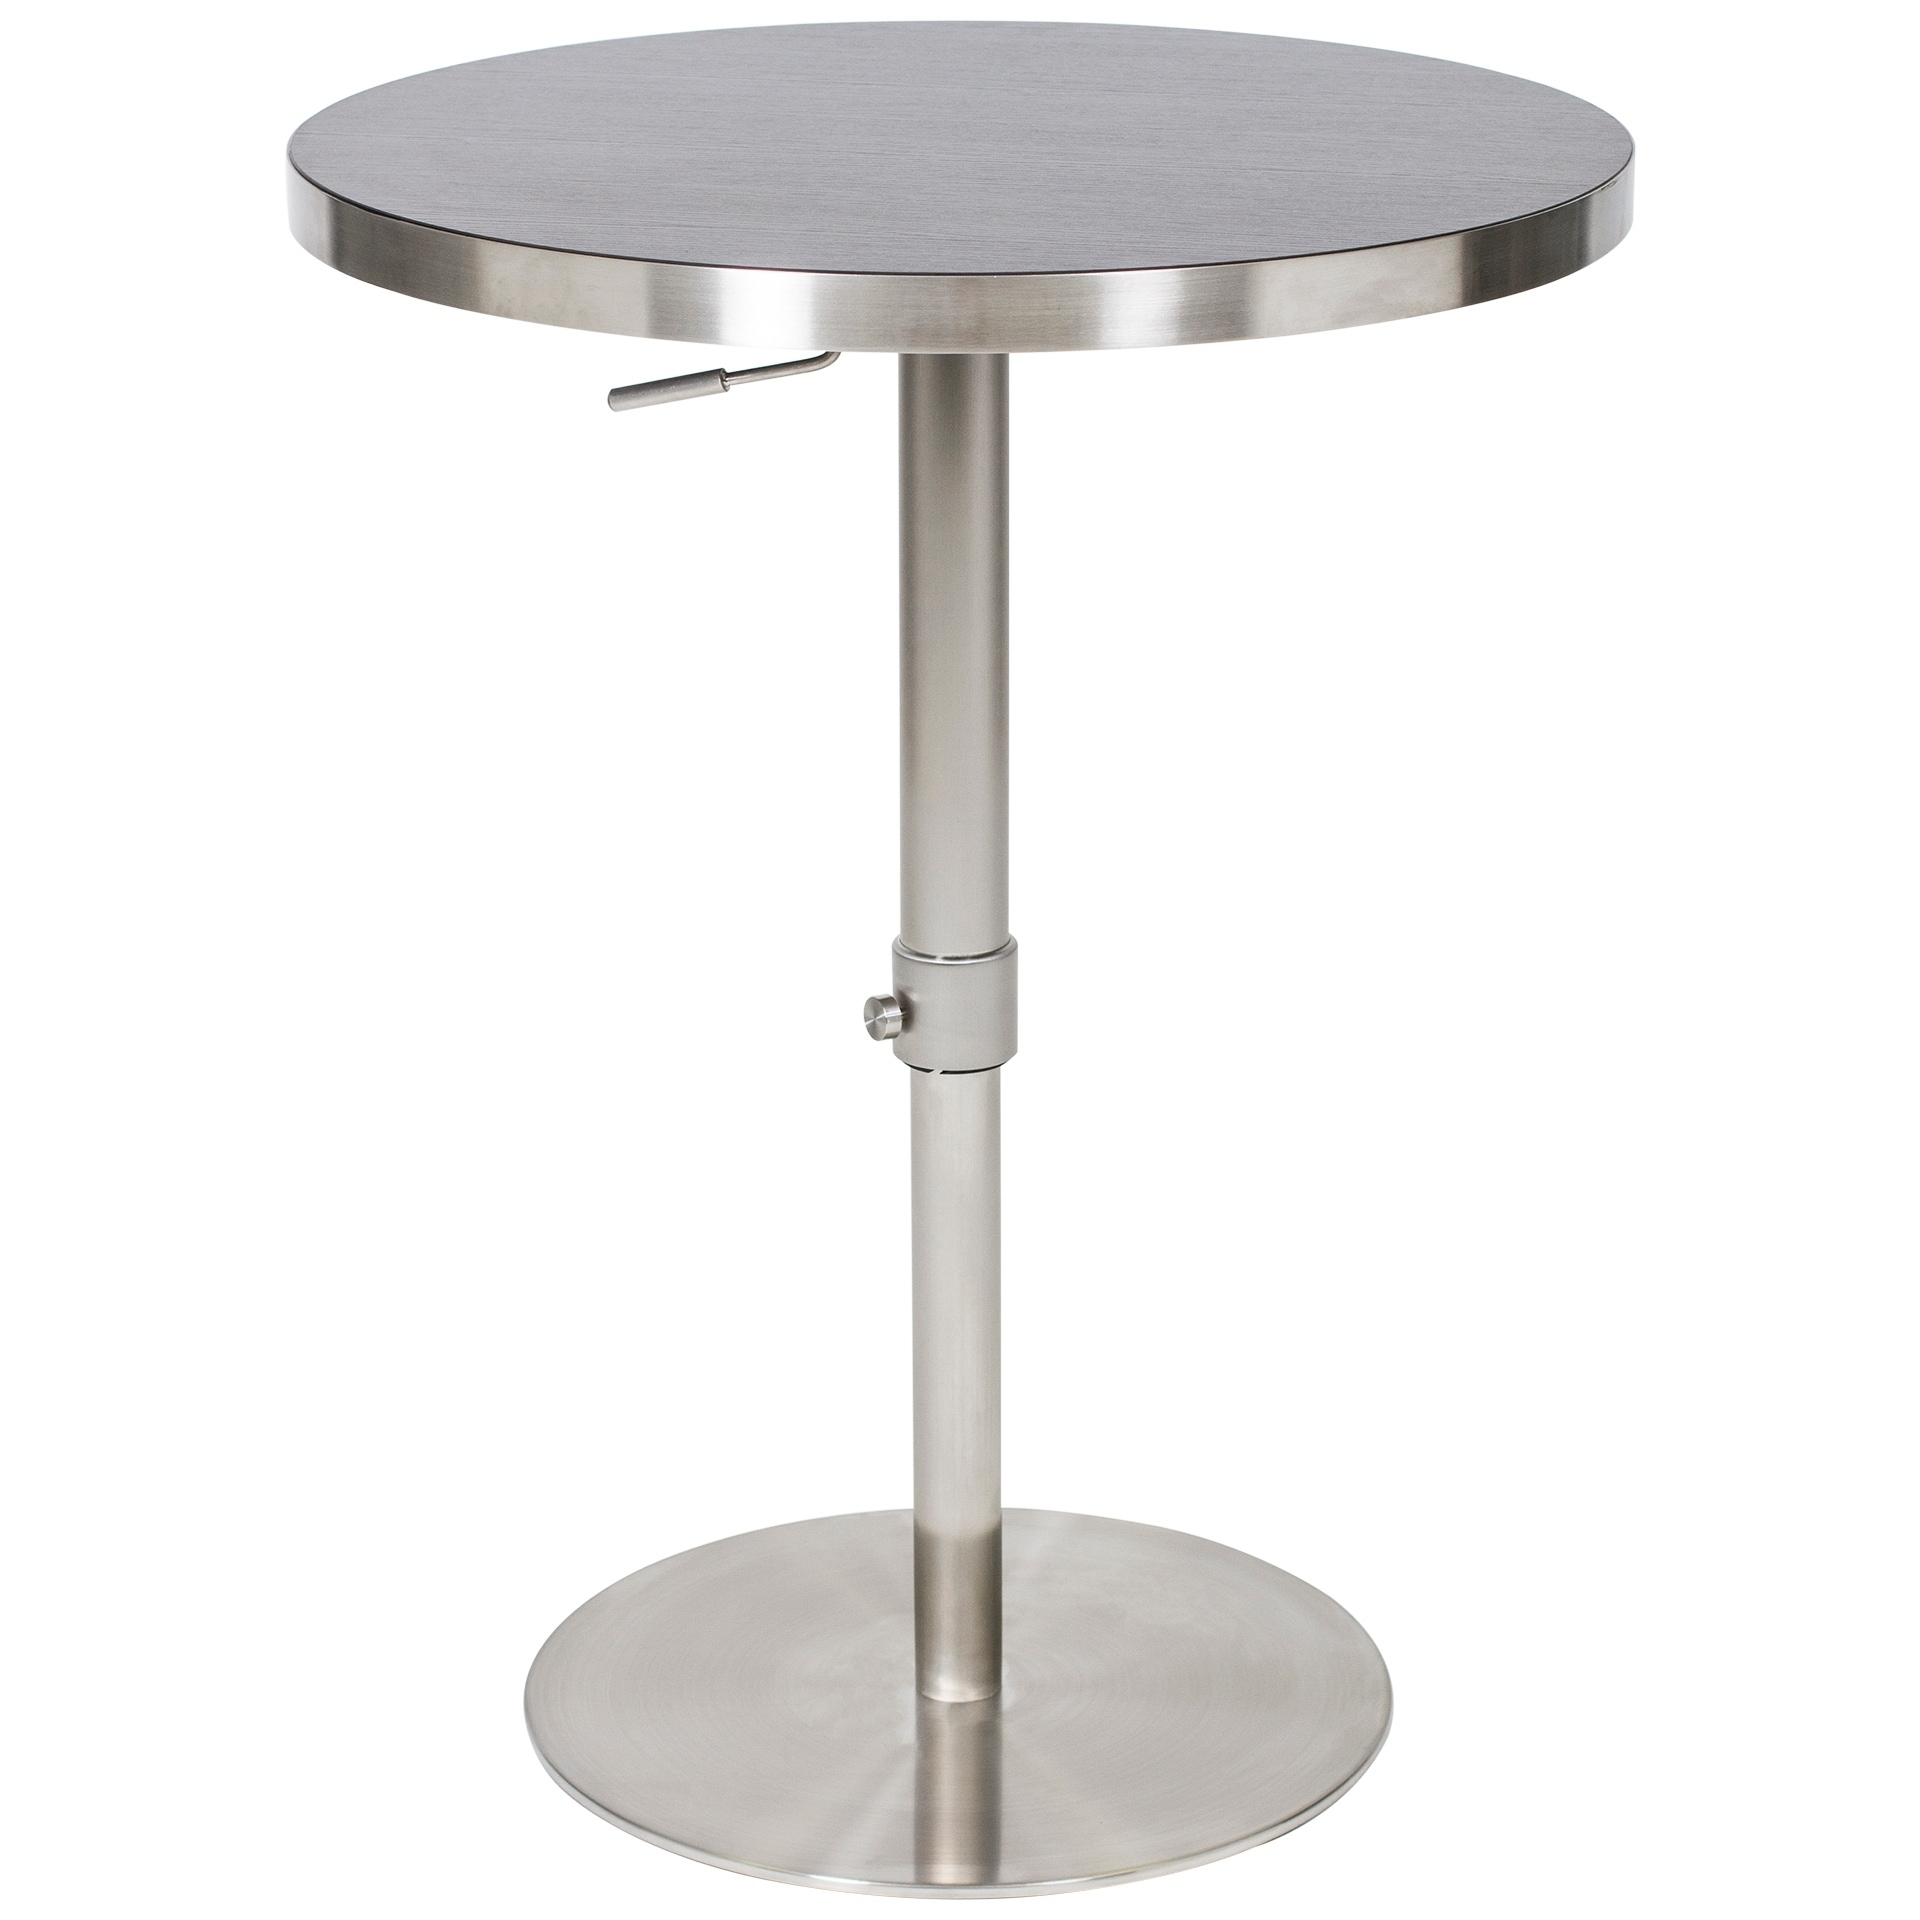 Round Stainless Base Coffee Height Tables: 36-inch Adjustable Height Round Espresso Wood